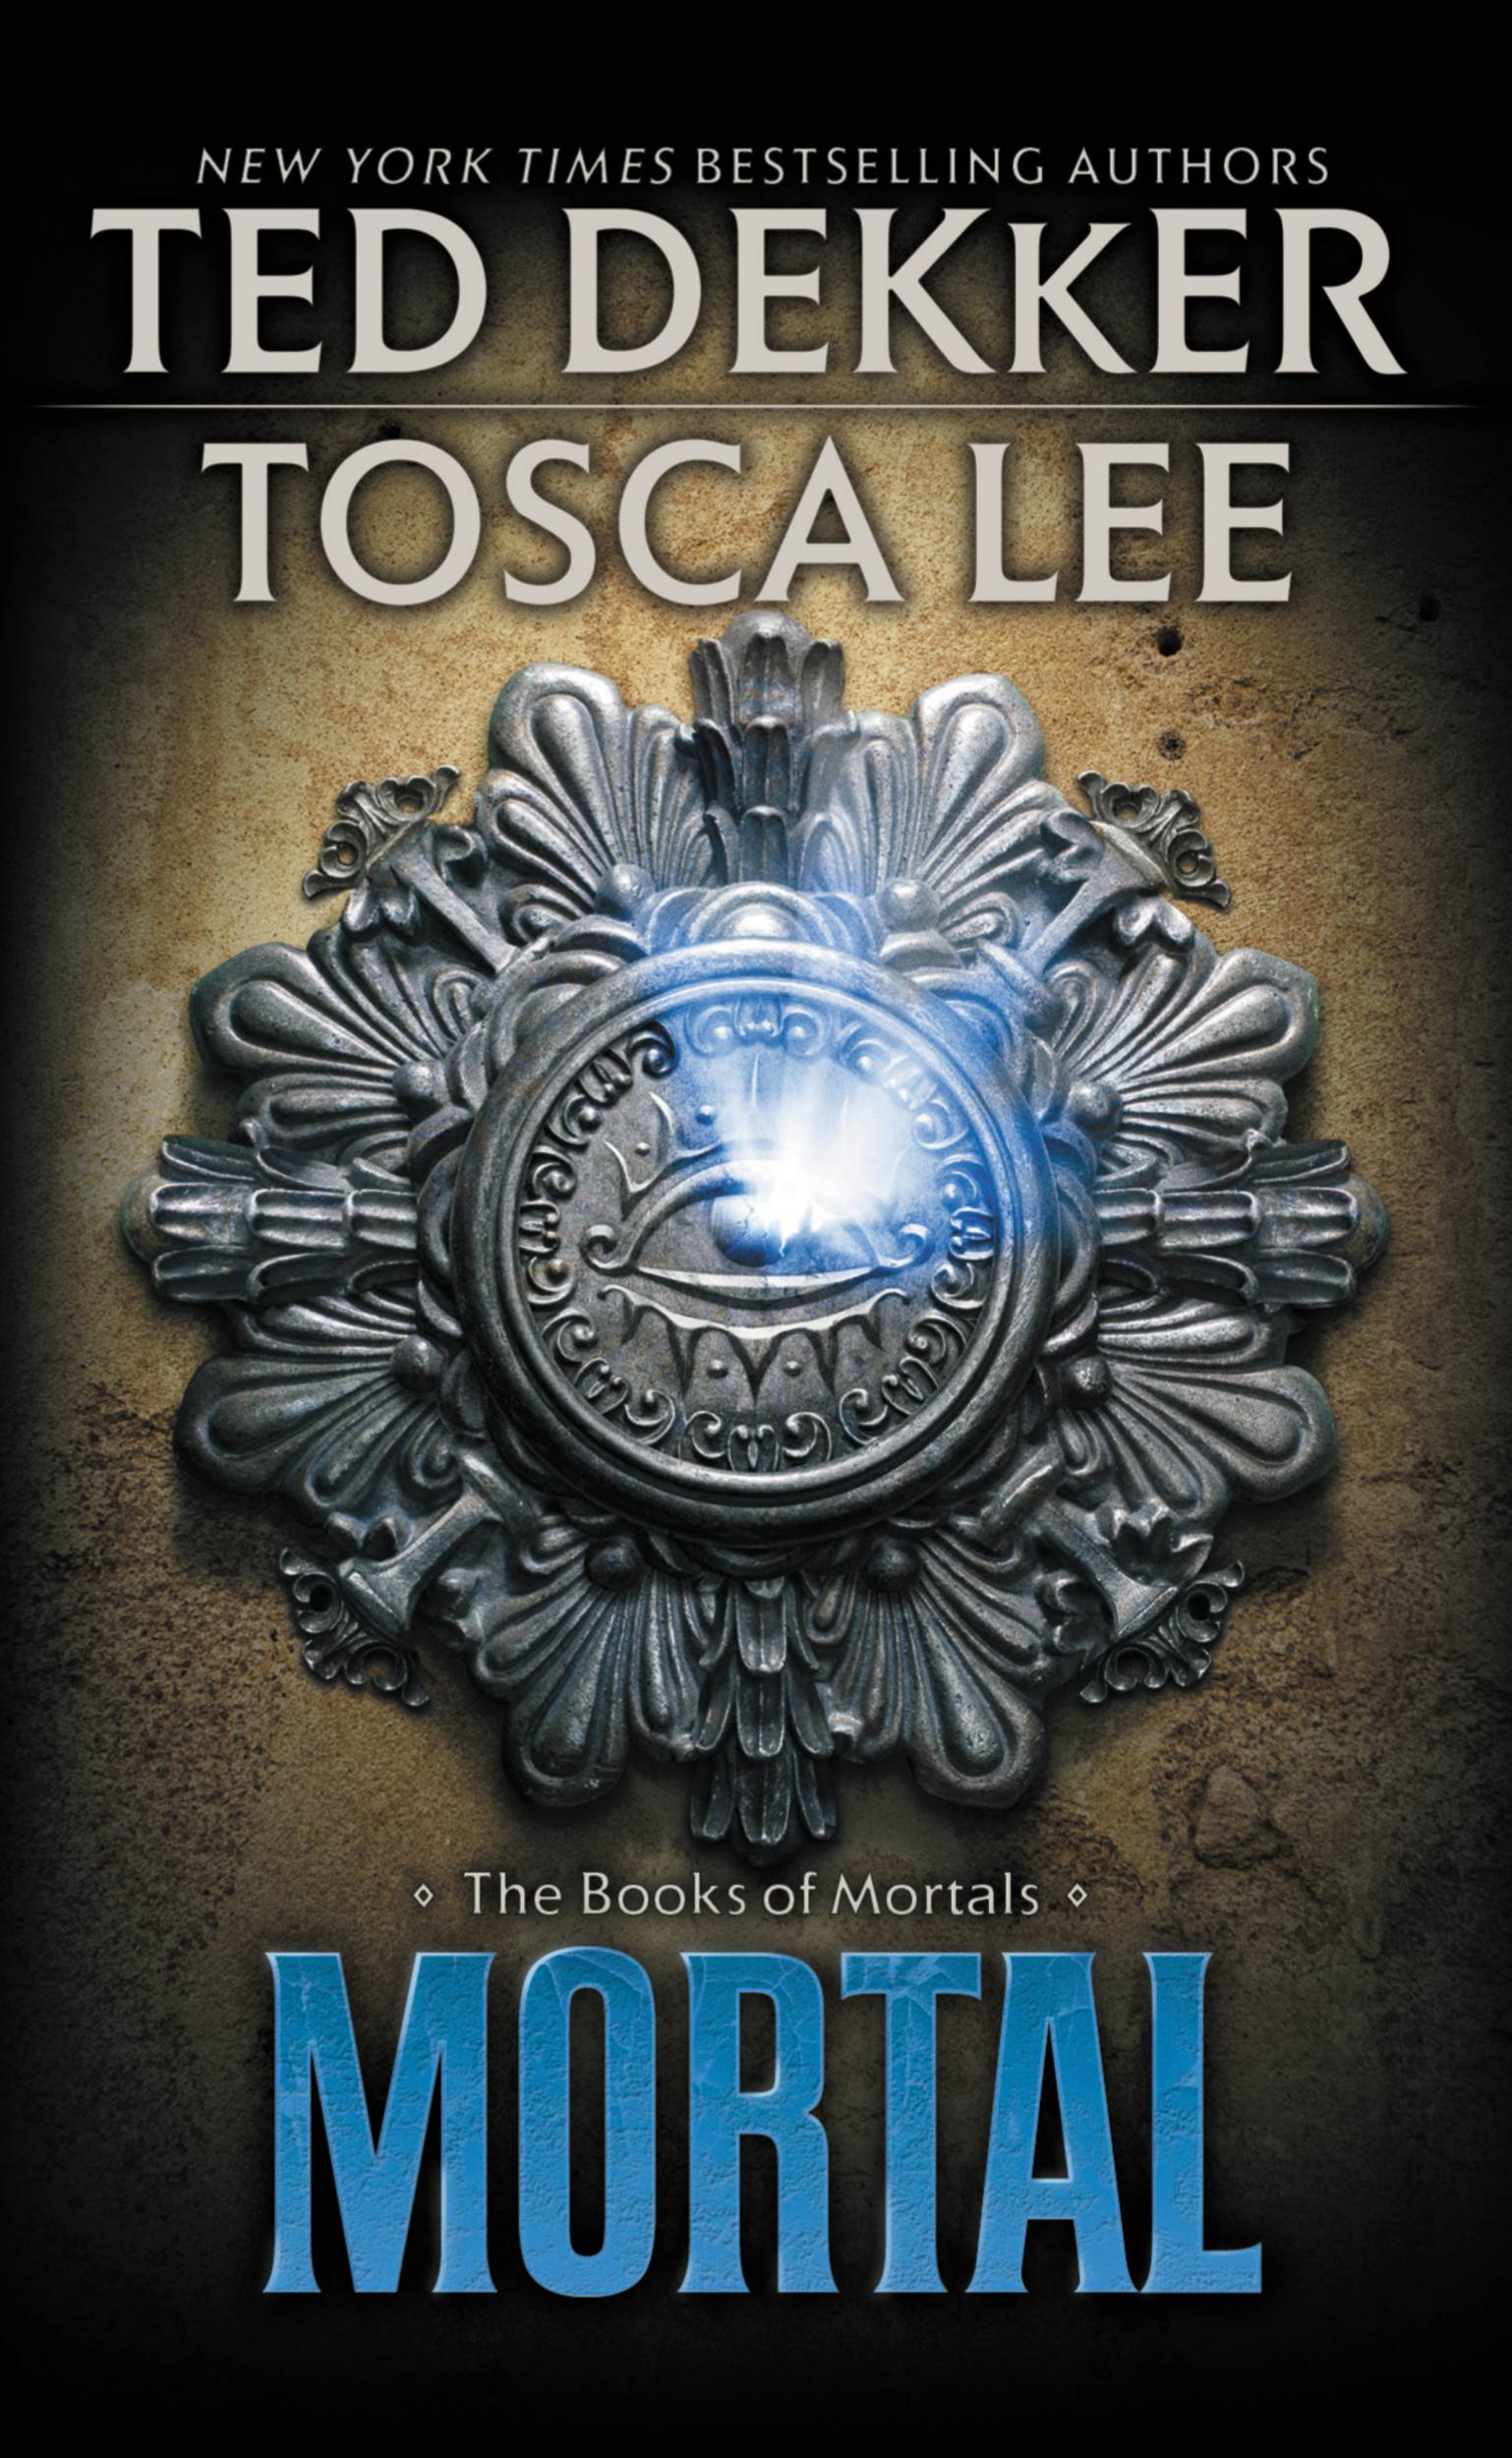 Mortal By: Ted Dekker,Tosca Lee